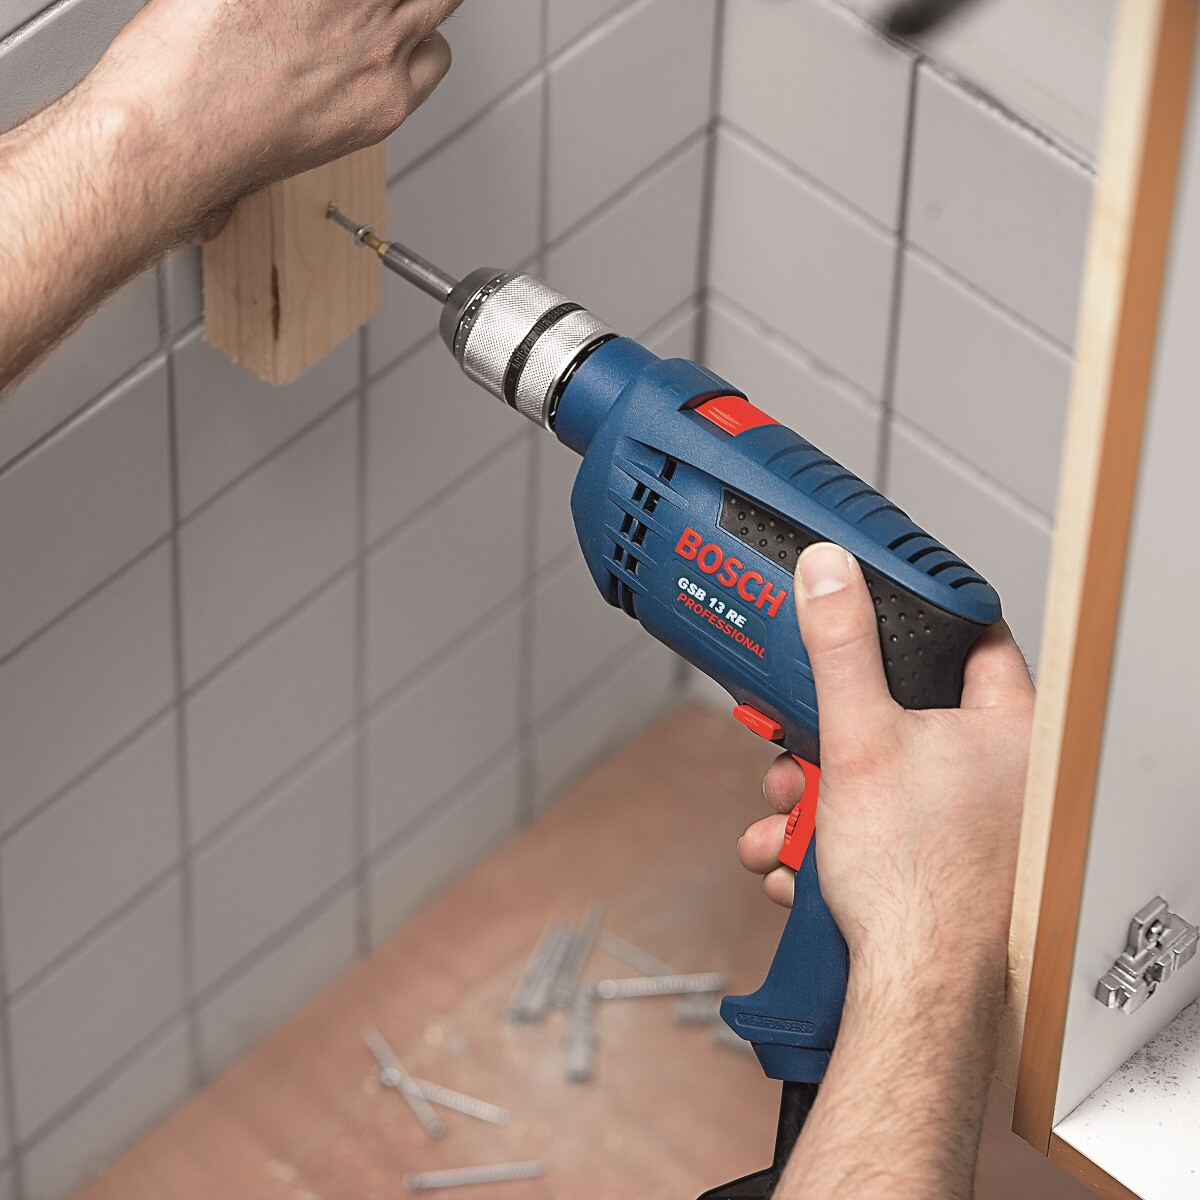 bosch gsb 13 re 13mm impact drill 600w from lawson his. Black Bedroom Furniture Sets. Home Design Ideas